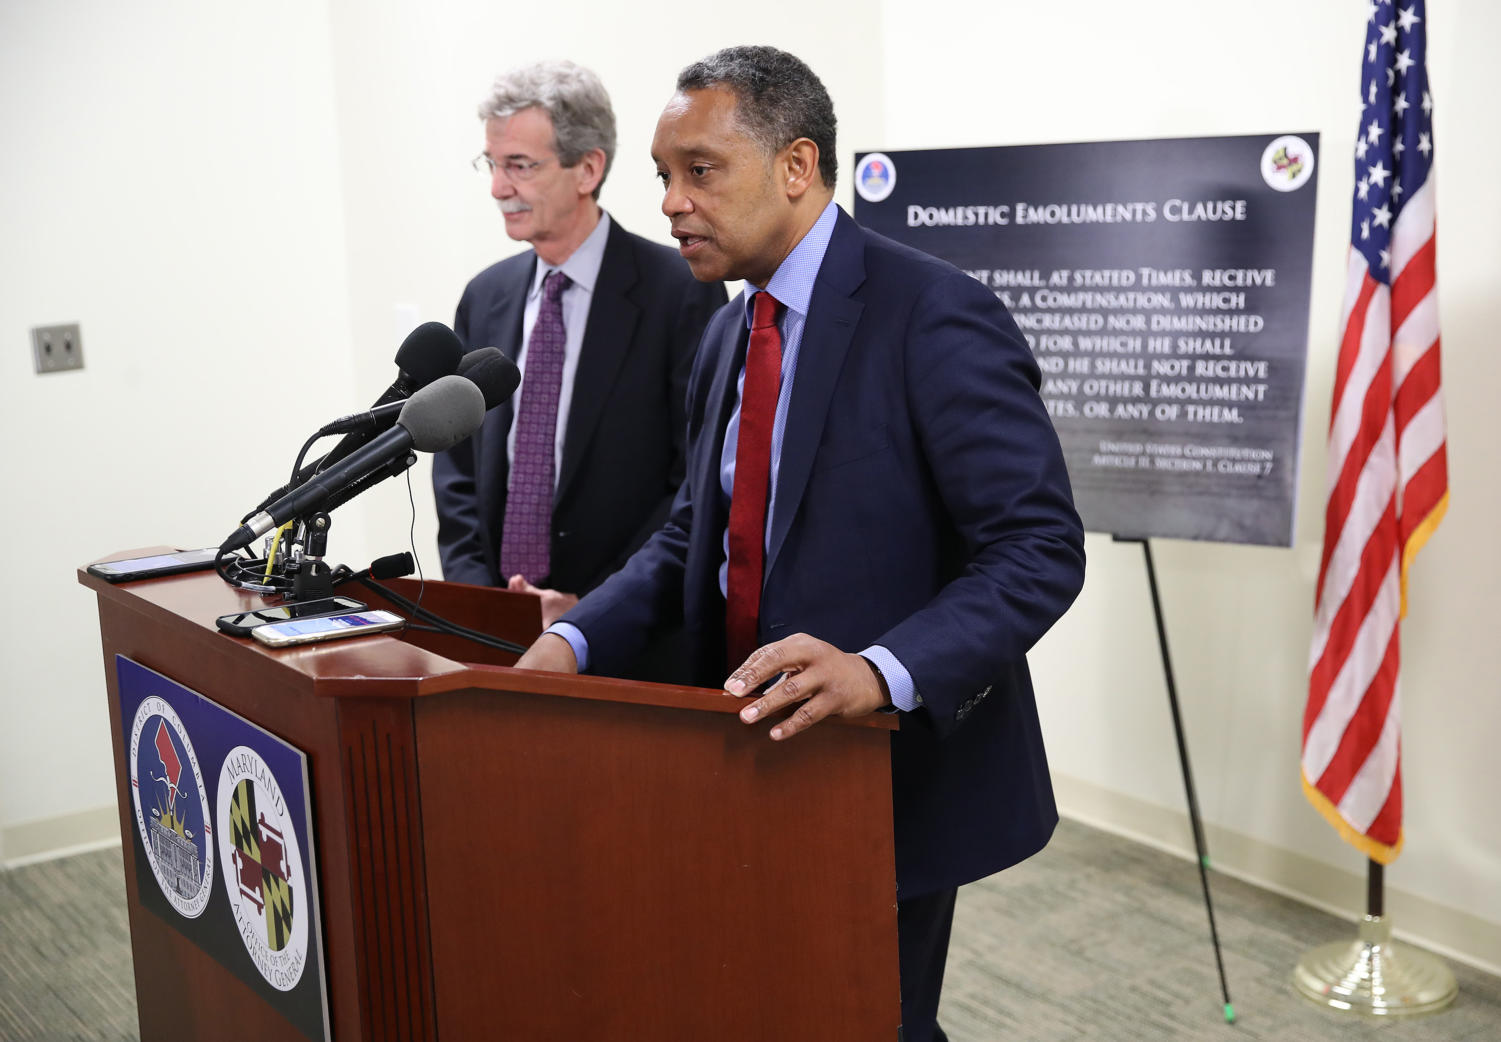 Maryland Attorney General Brian Frosh (L) and District of Columbia Attorney General Karl Racine (R) answer questions after a case before the United States Court of Appeals for the Fourth Circuit March 19, 2019 in Richmond, Virginia. (Win McNamee/Getty Images/TNS) **FOR USE WITH THIS STORY ONLY**